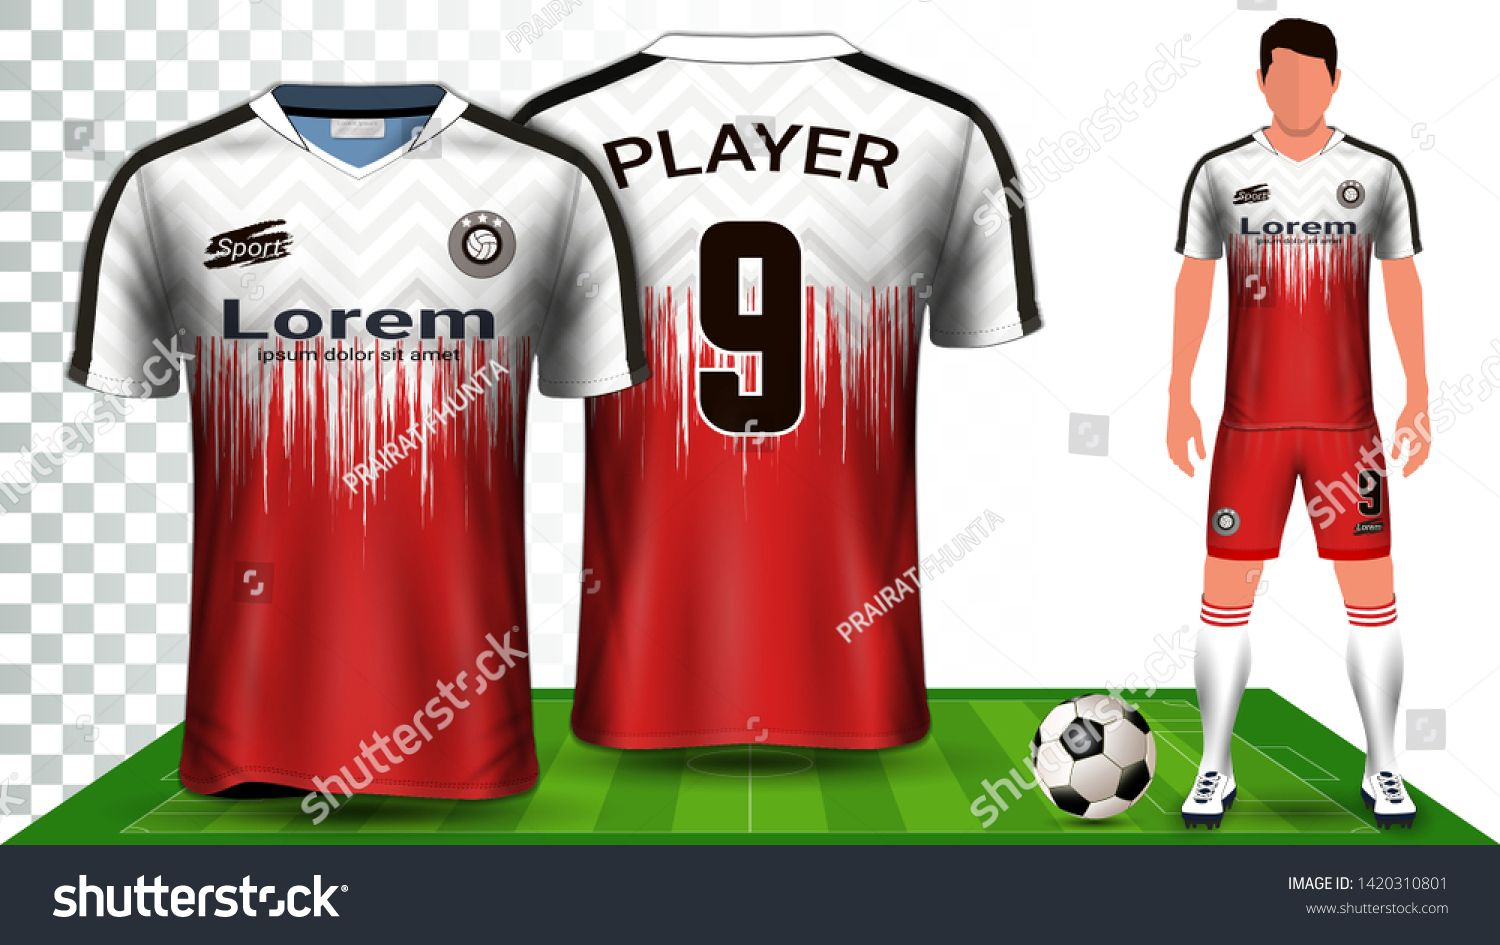 Download Soccer Jersey Sport Shirt Or Football Kit Uniform Presentation Mockup Template Front And Back View Including Shorts And Socks Desain Kaos Jersey Kaos Desain